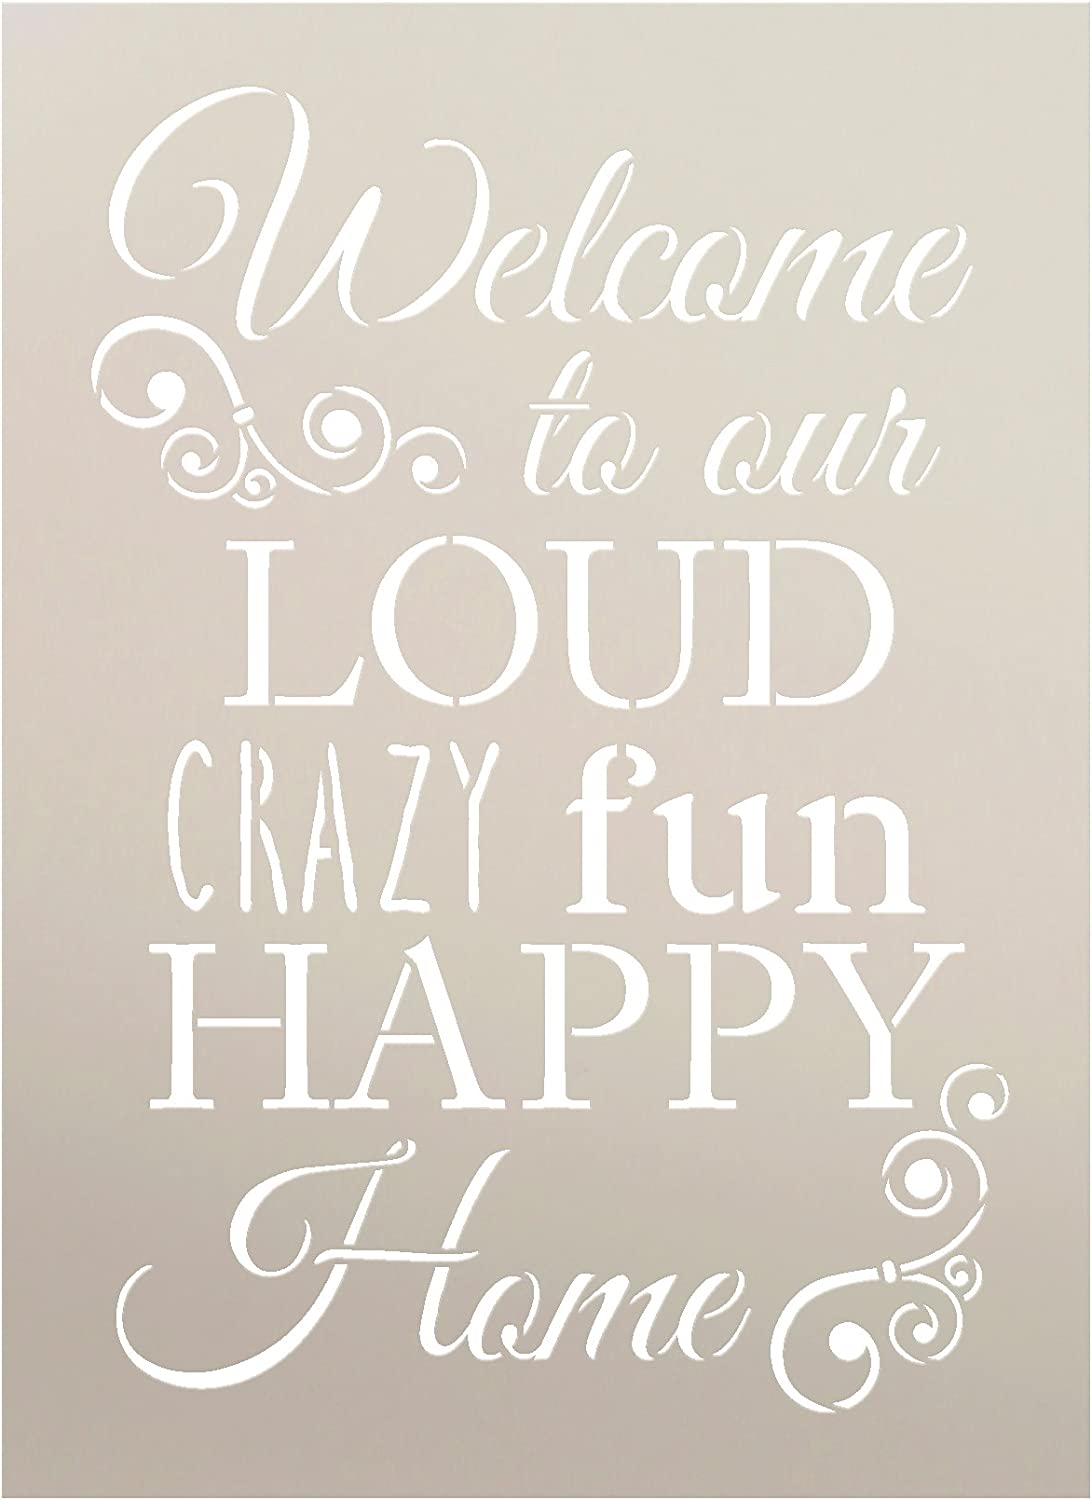 """Welcome - Loud Crazy Fun Happy Stencil by StudioR12 